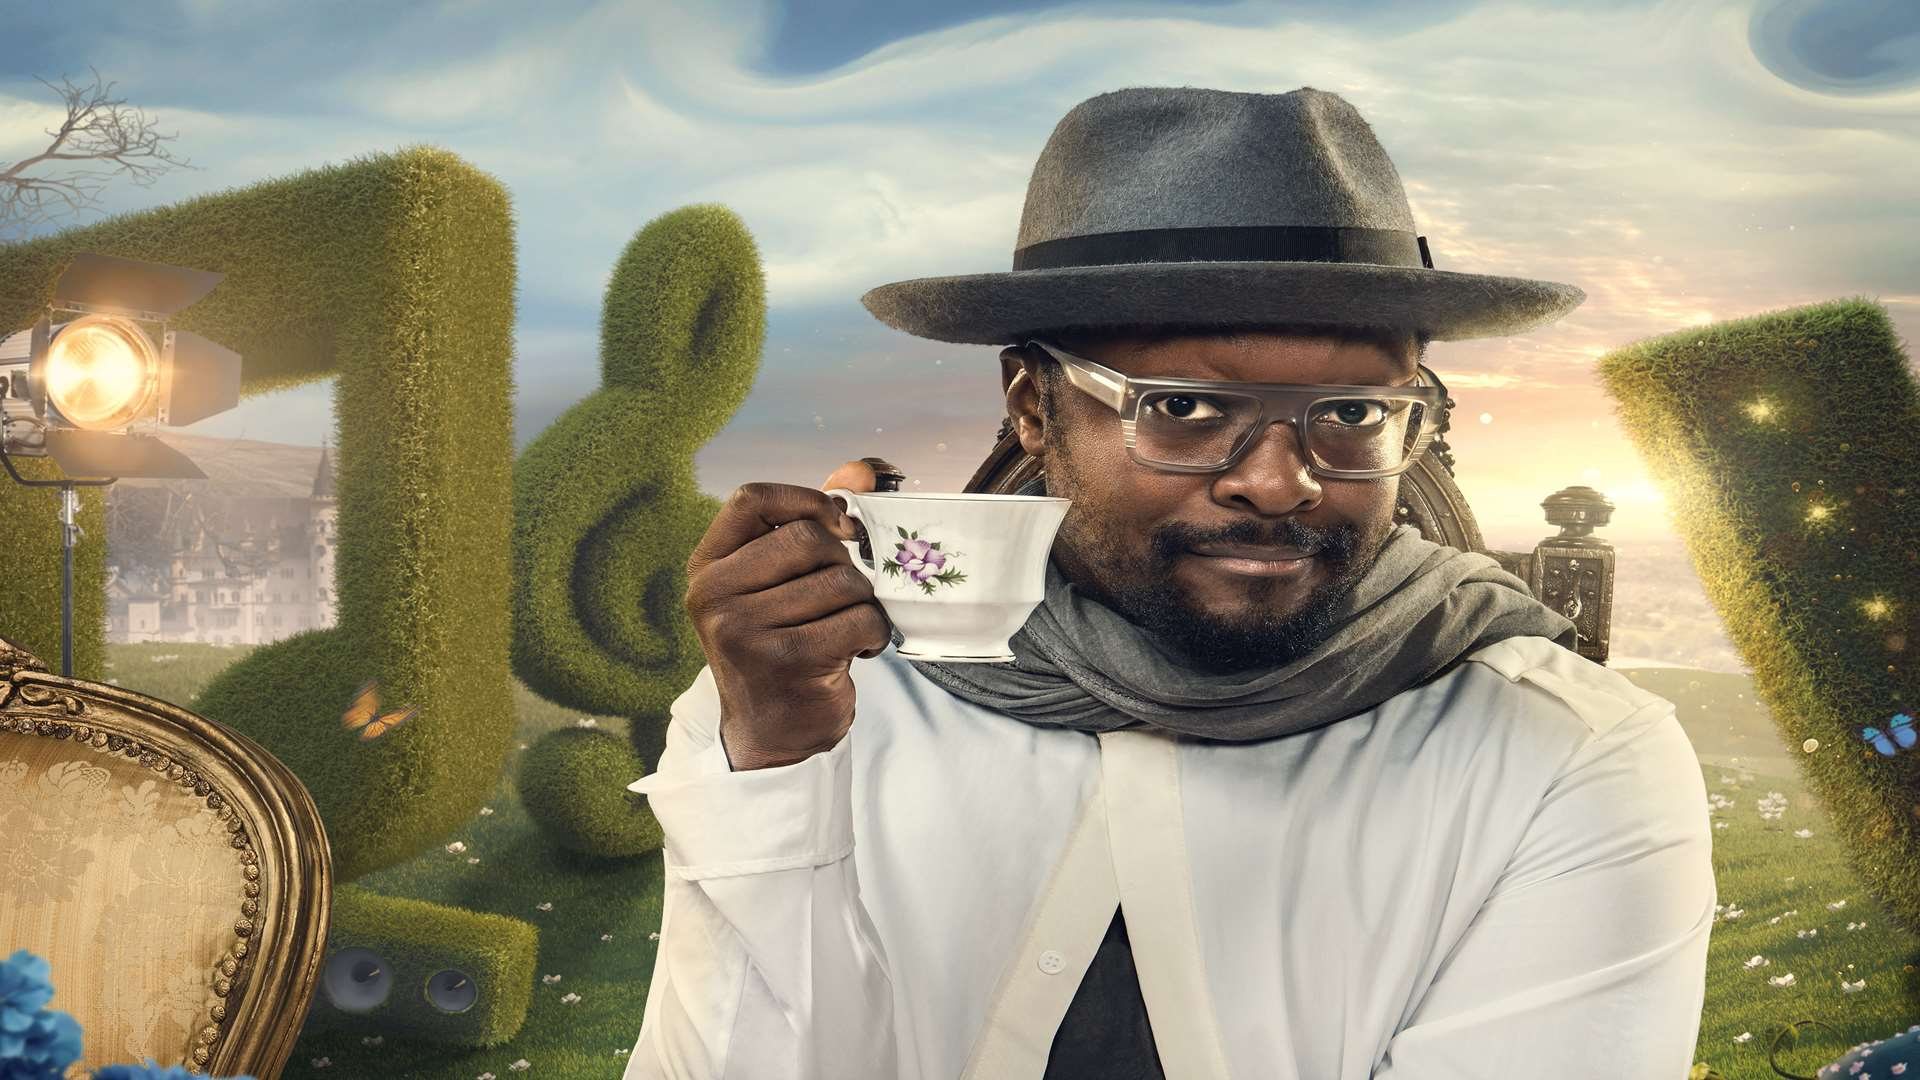 Will.i.am was flying to New York